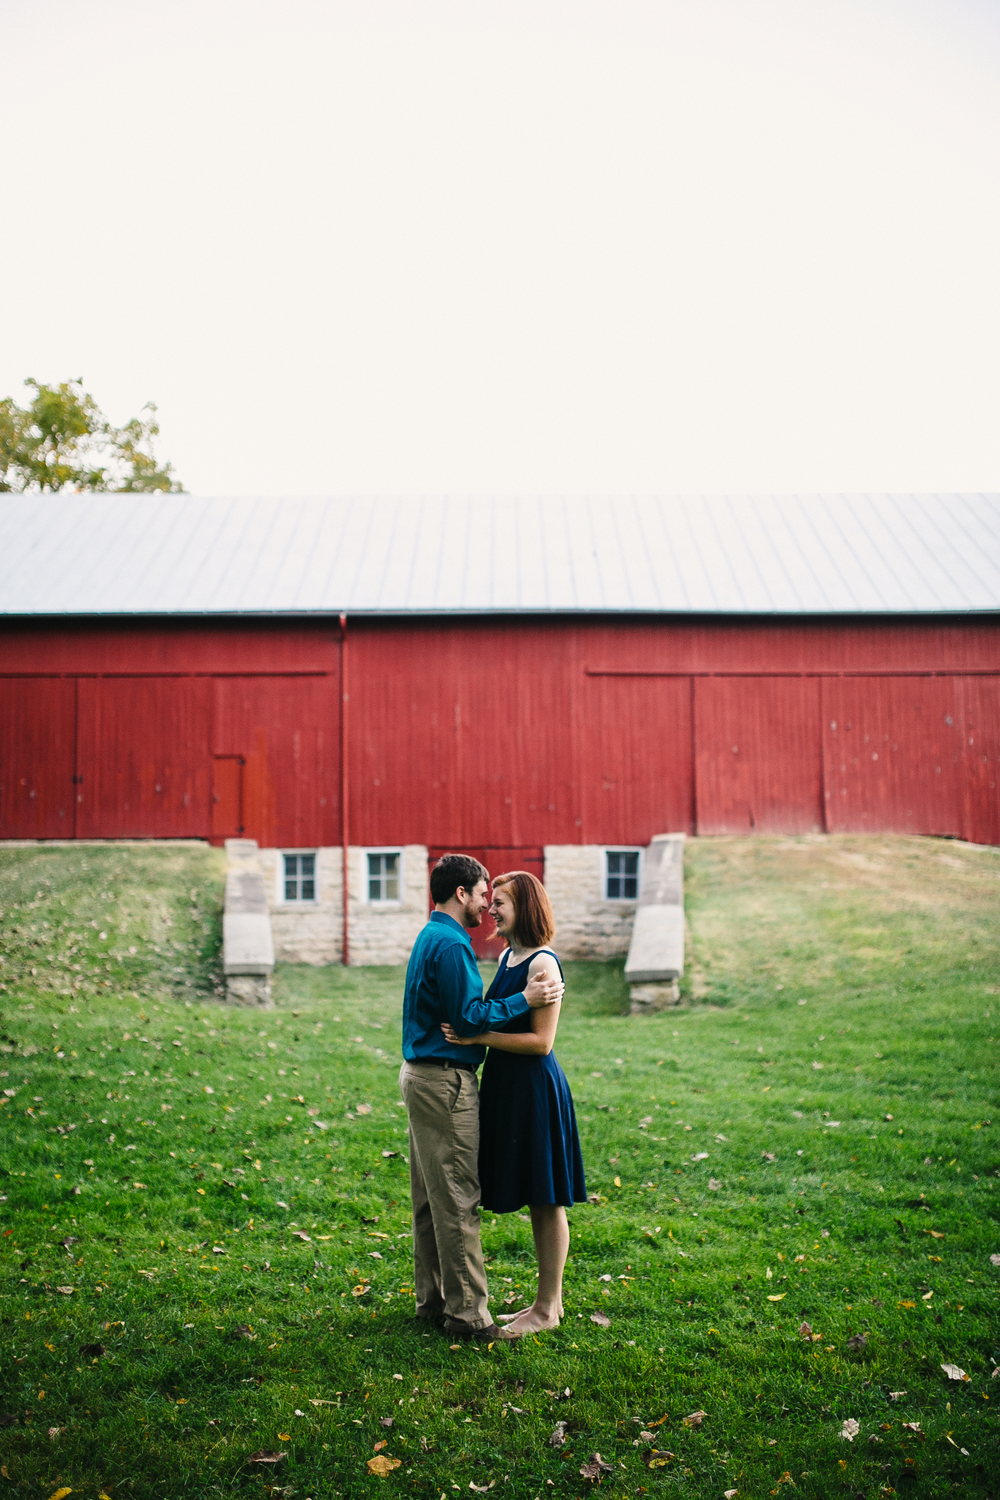 John & Kylyn Engaged - Corrie Mick Photography-65.jpg